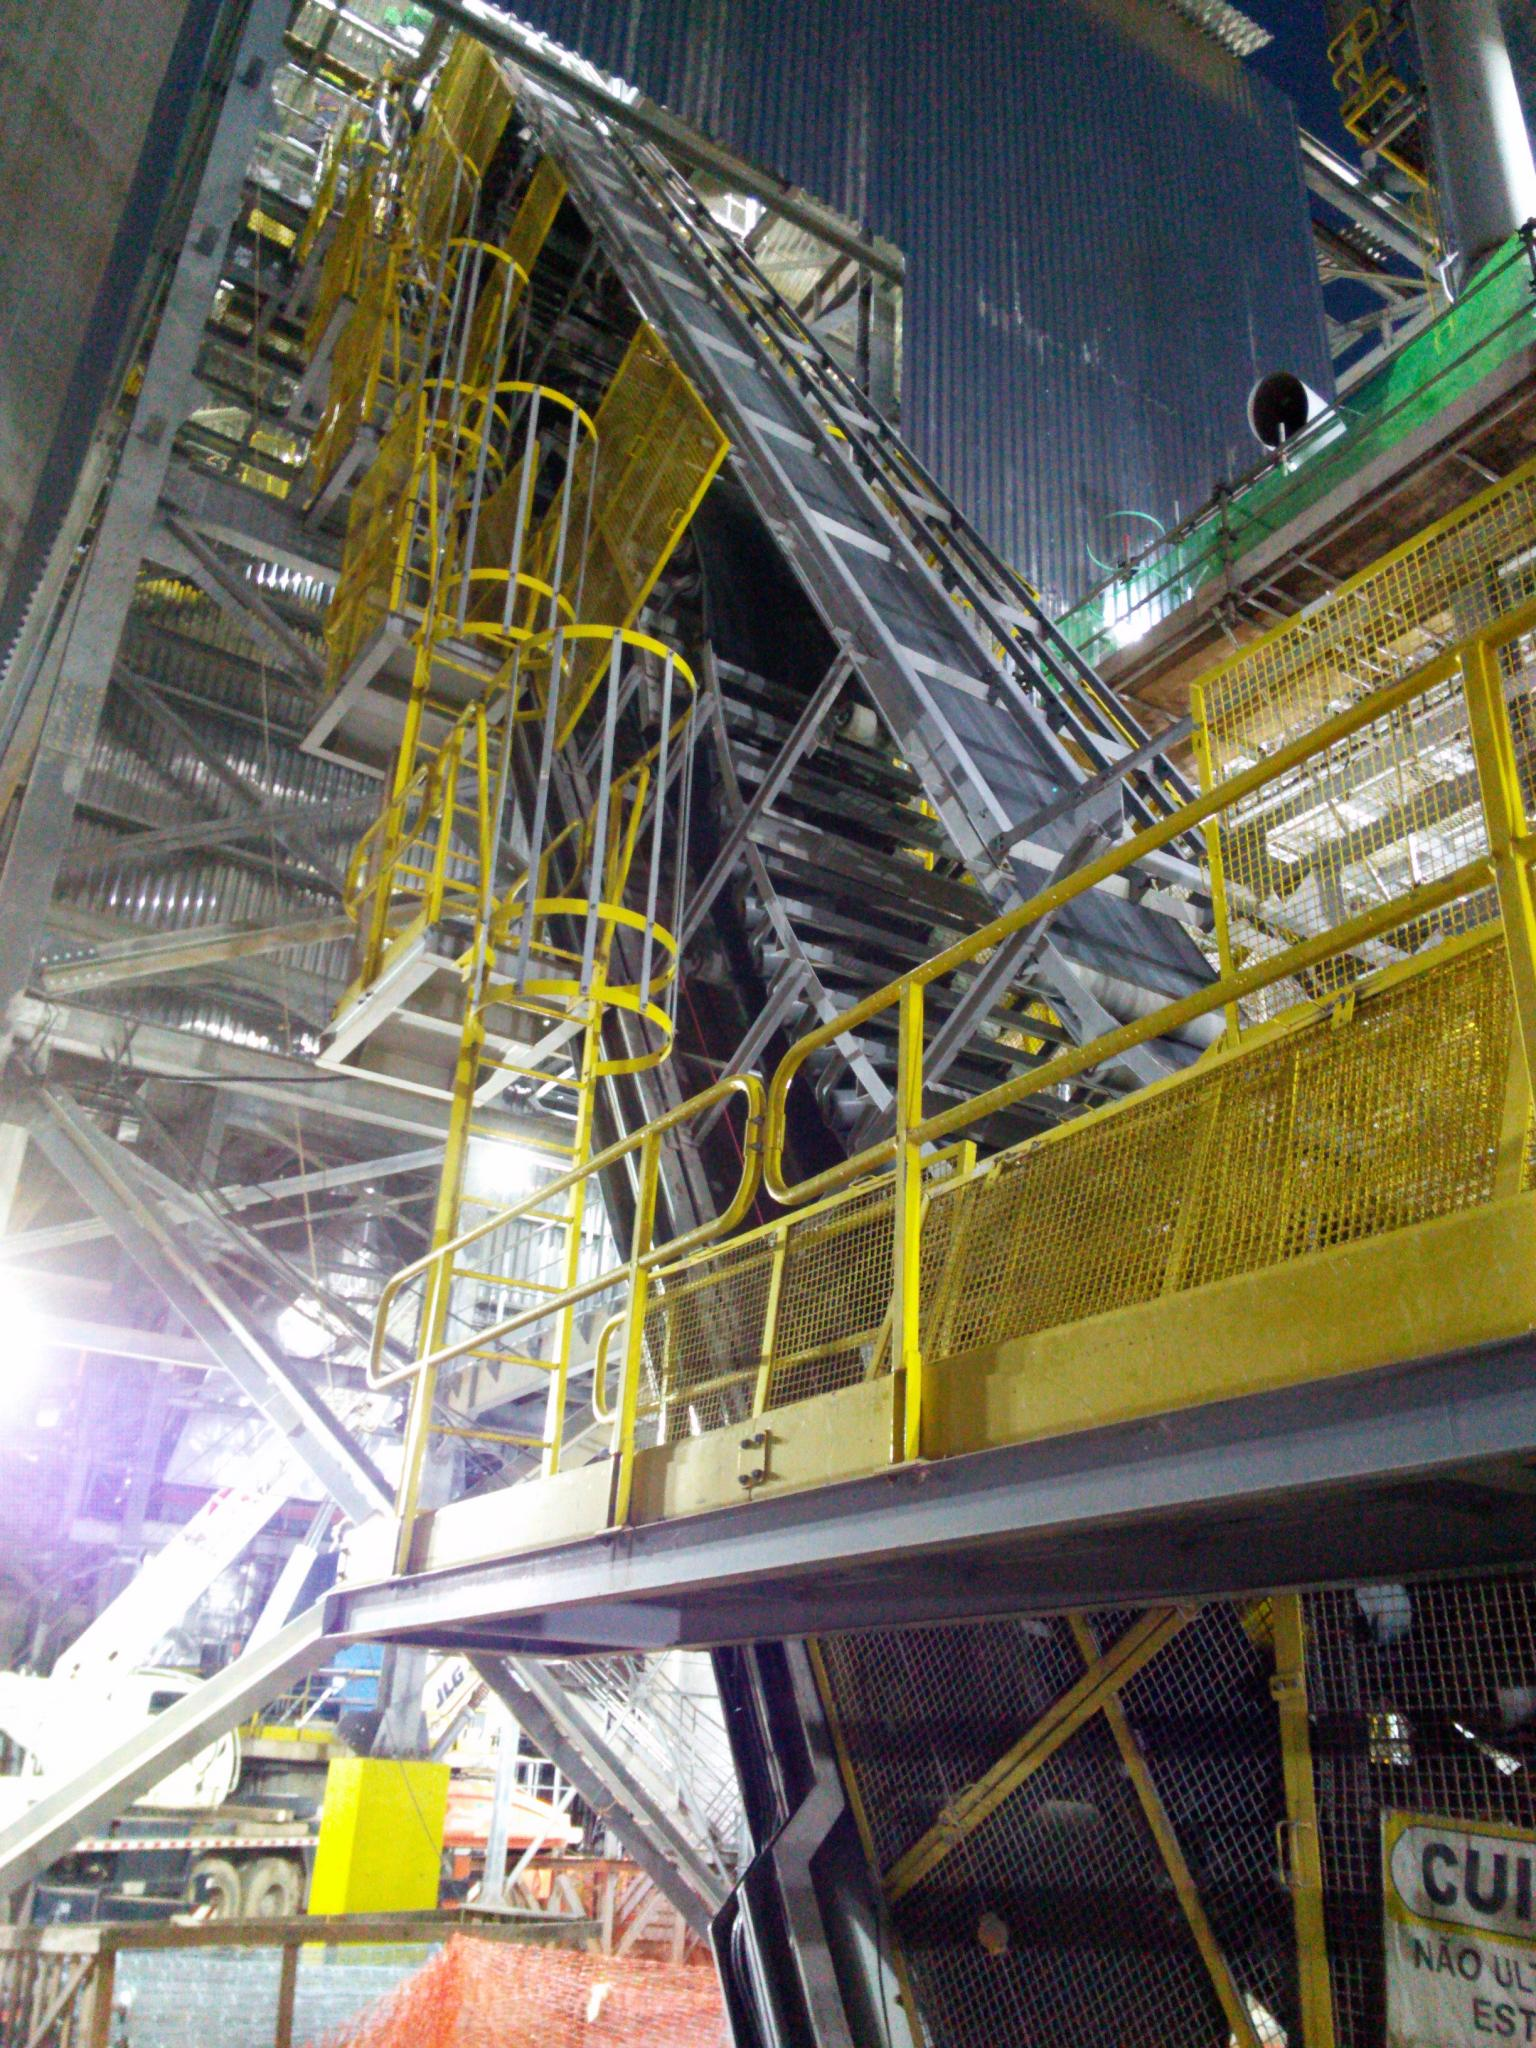 DSI Sandwich high-angle conveyor elevates 720 t/h of limestone, iron ore, sand and clay at a 60 degrees angle at a cement plant in Brazil